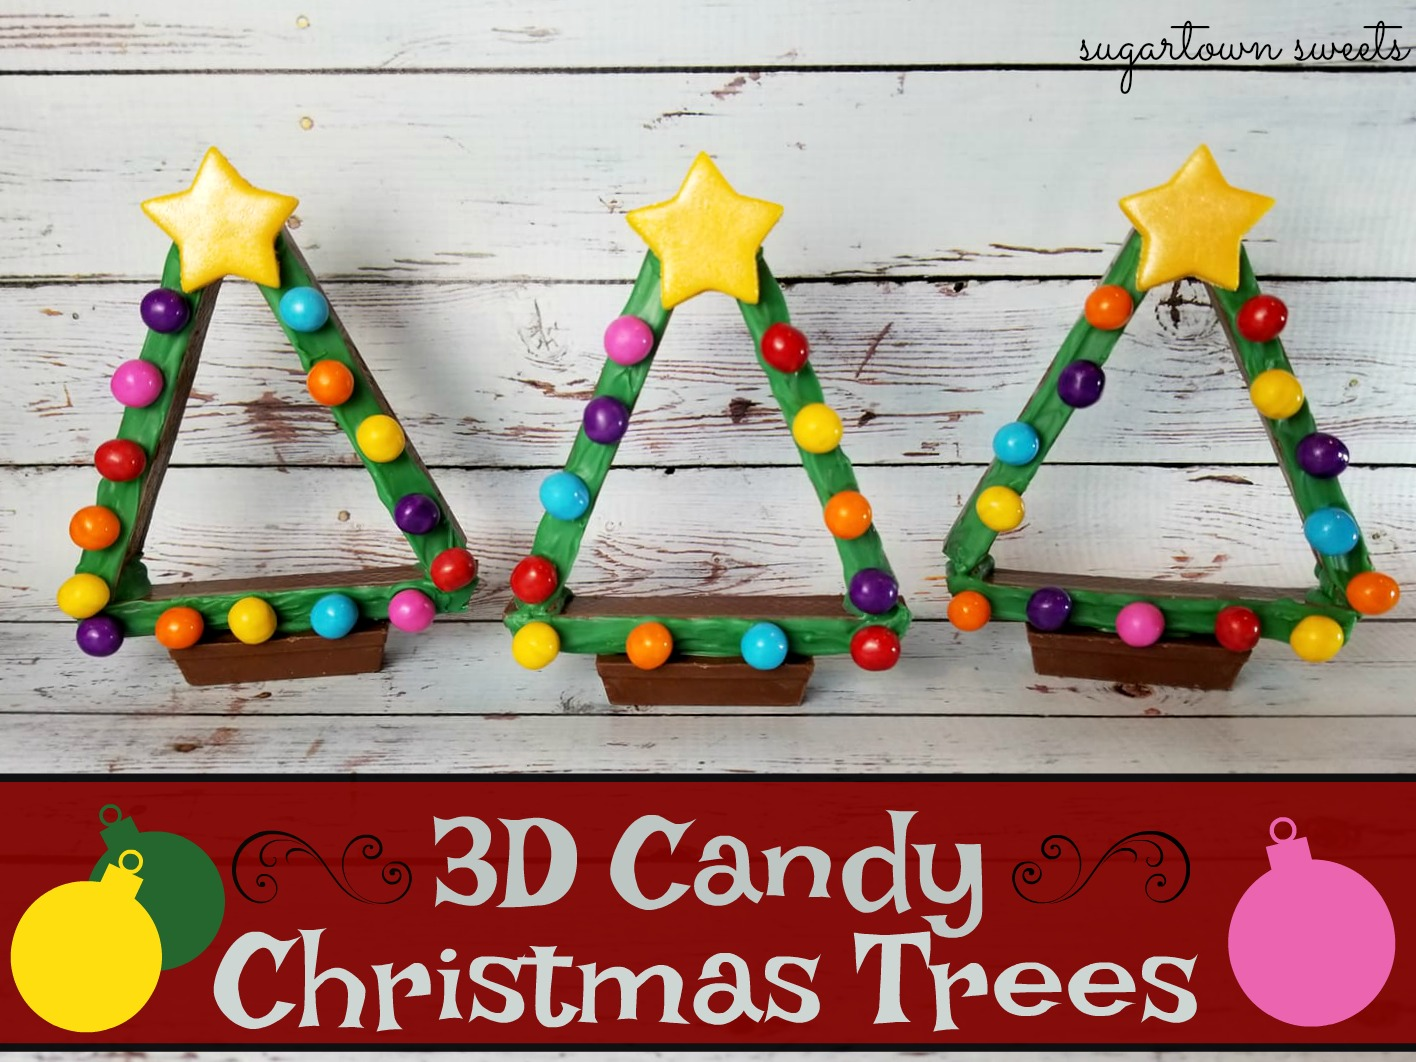 Sugartown Sweets: 3D Candy Christmas Trees For Christmas in July!